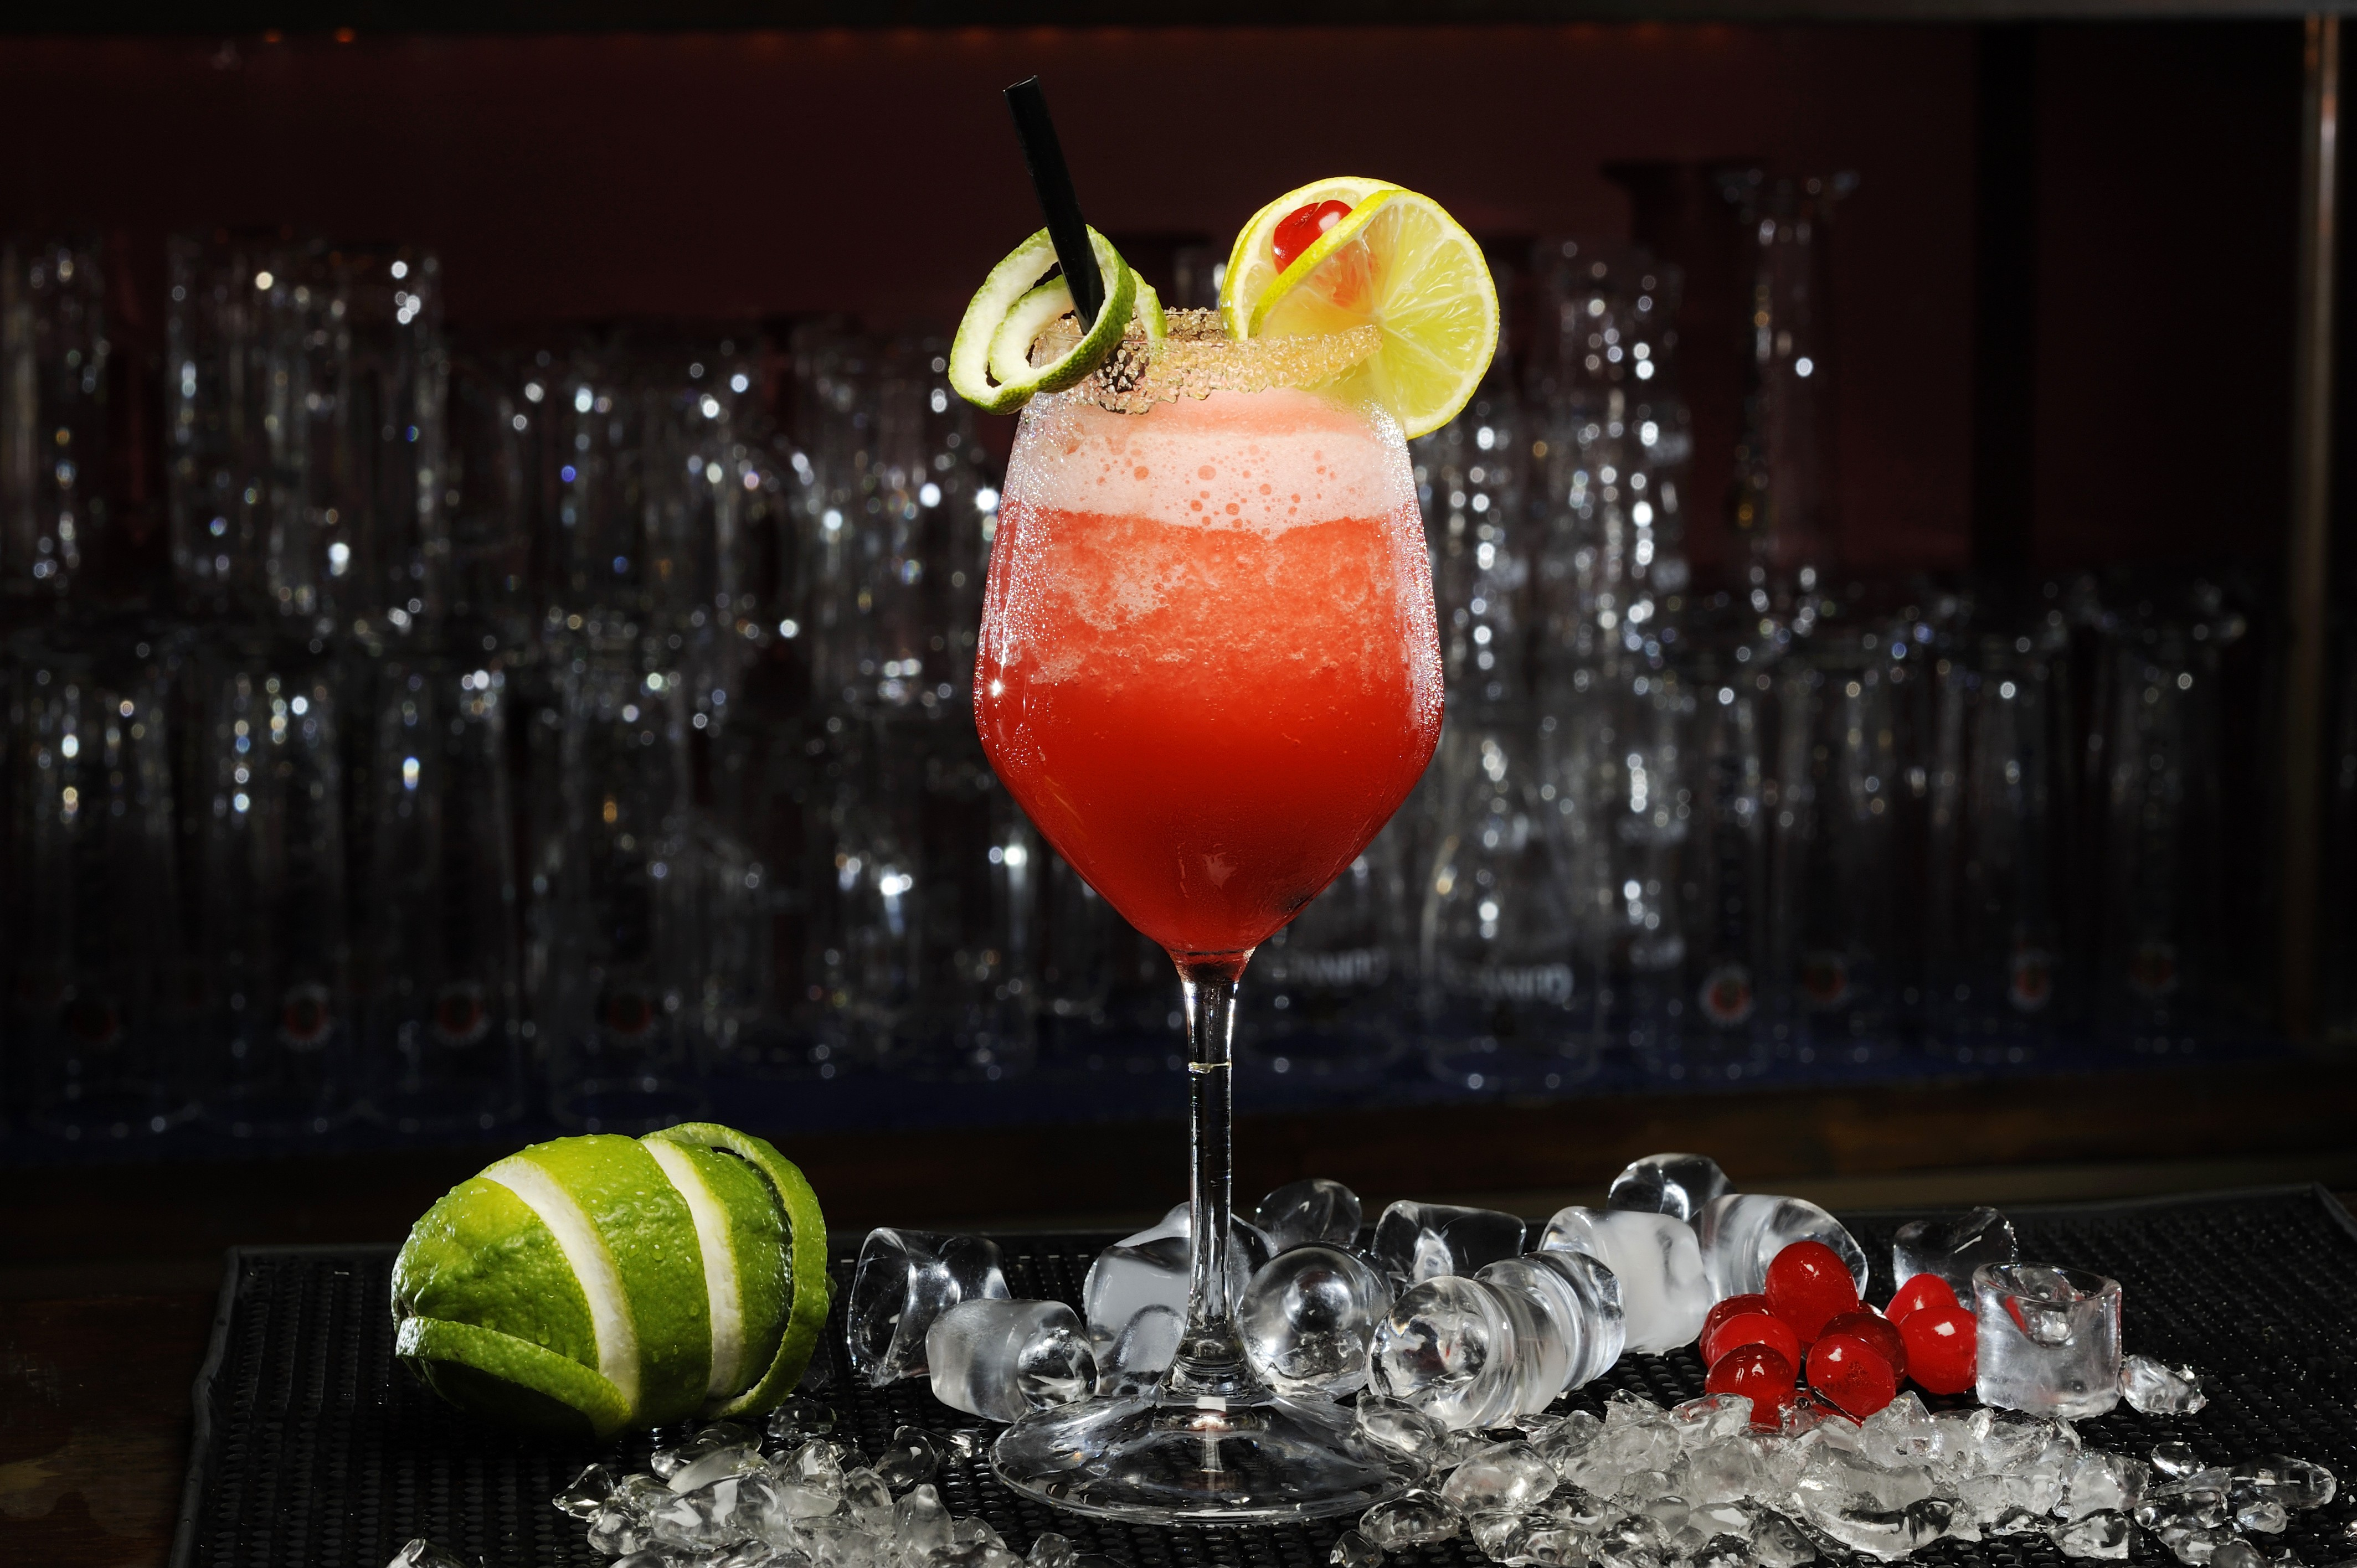 Cosmopolitan cocktail wallpaper  Wallpaper Daiquiri cocktail, lime, mint, cherry, Food #5123